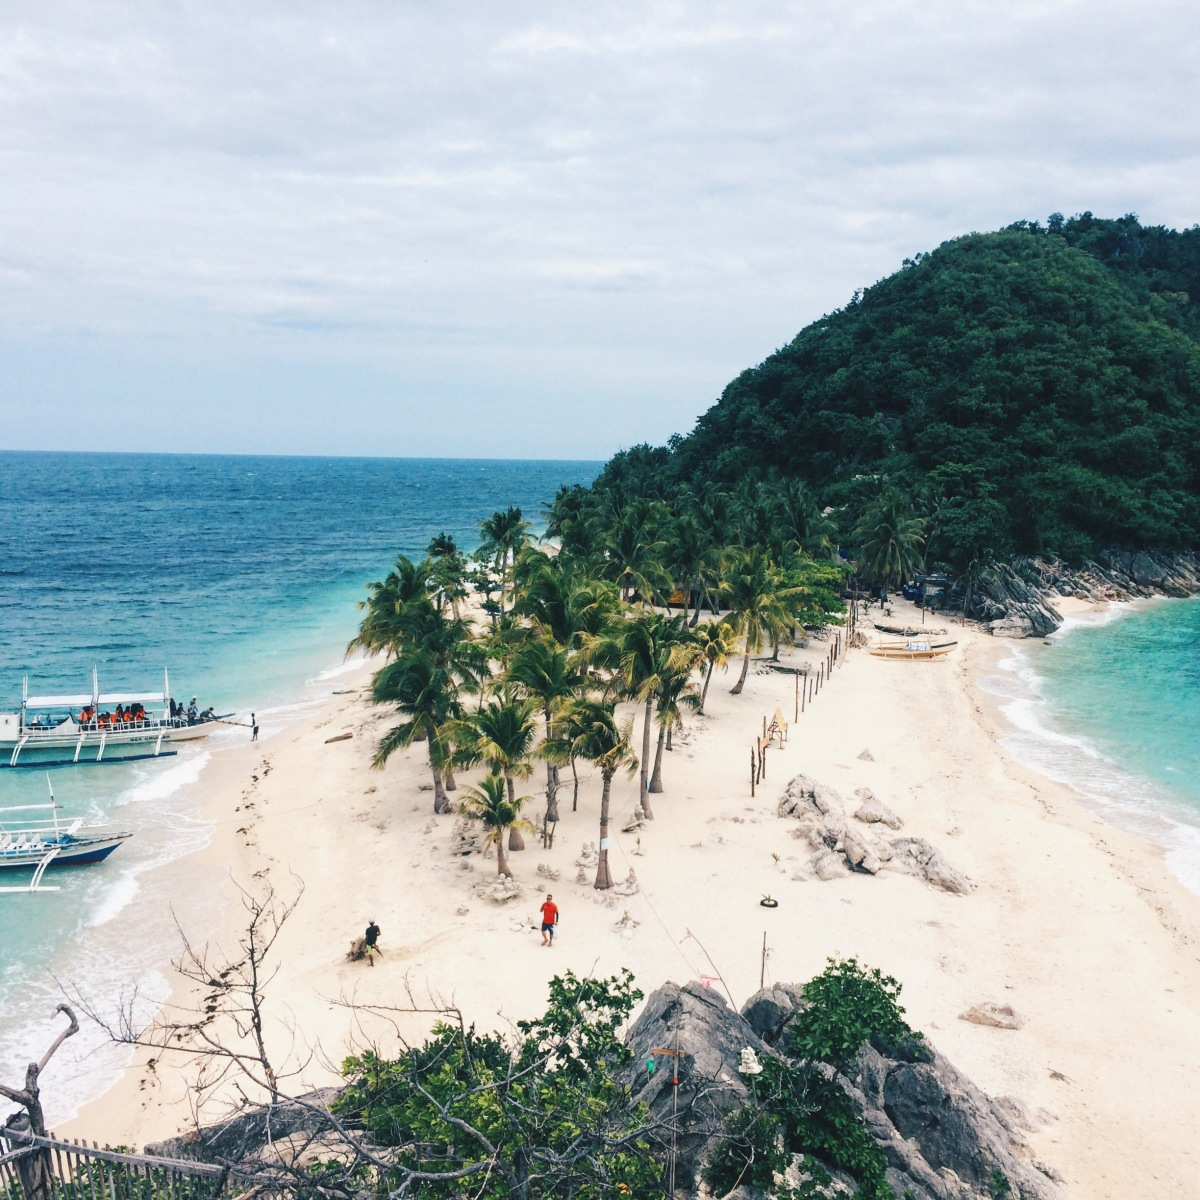 Beach Island: Islas De Gigantes Carles Iloilo: A DIY Travel Guide To The